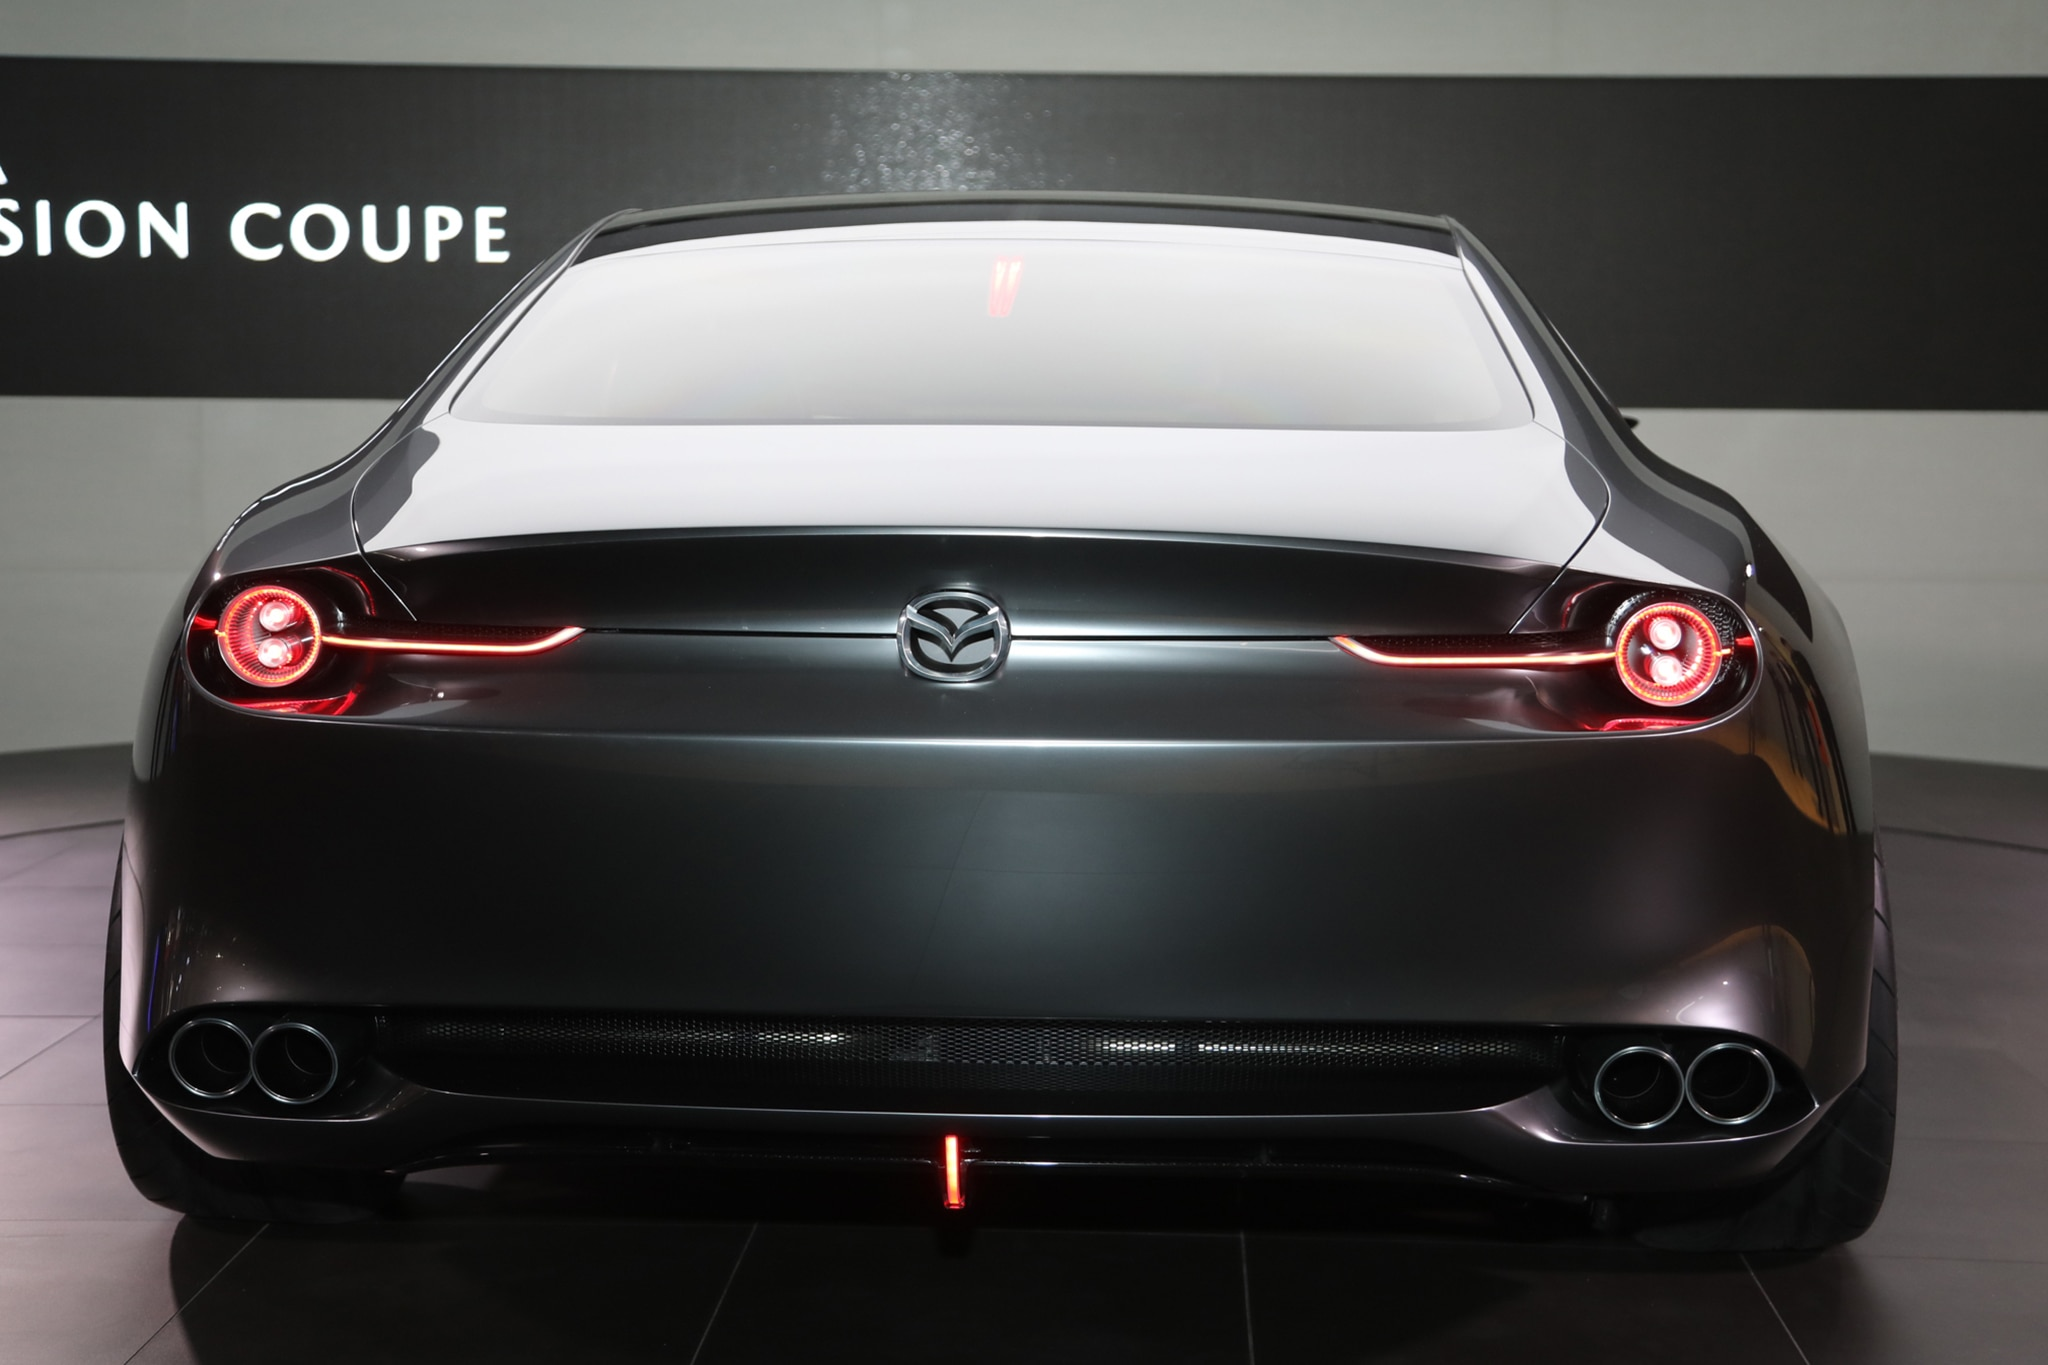 http://st.automobilemag.com/uploads/sites/11/2017/10/Mazda-Vision-Coupe-concept-rear.jpg